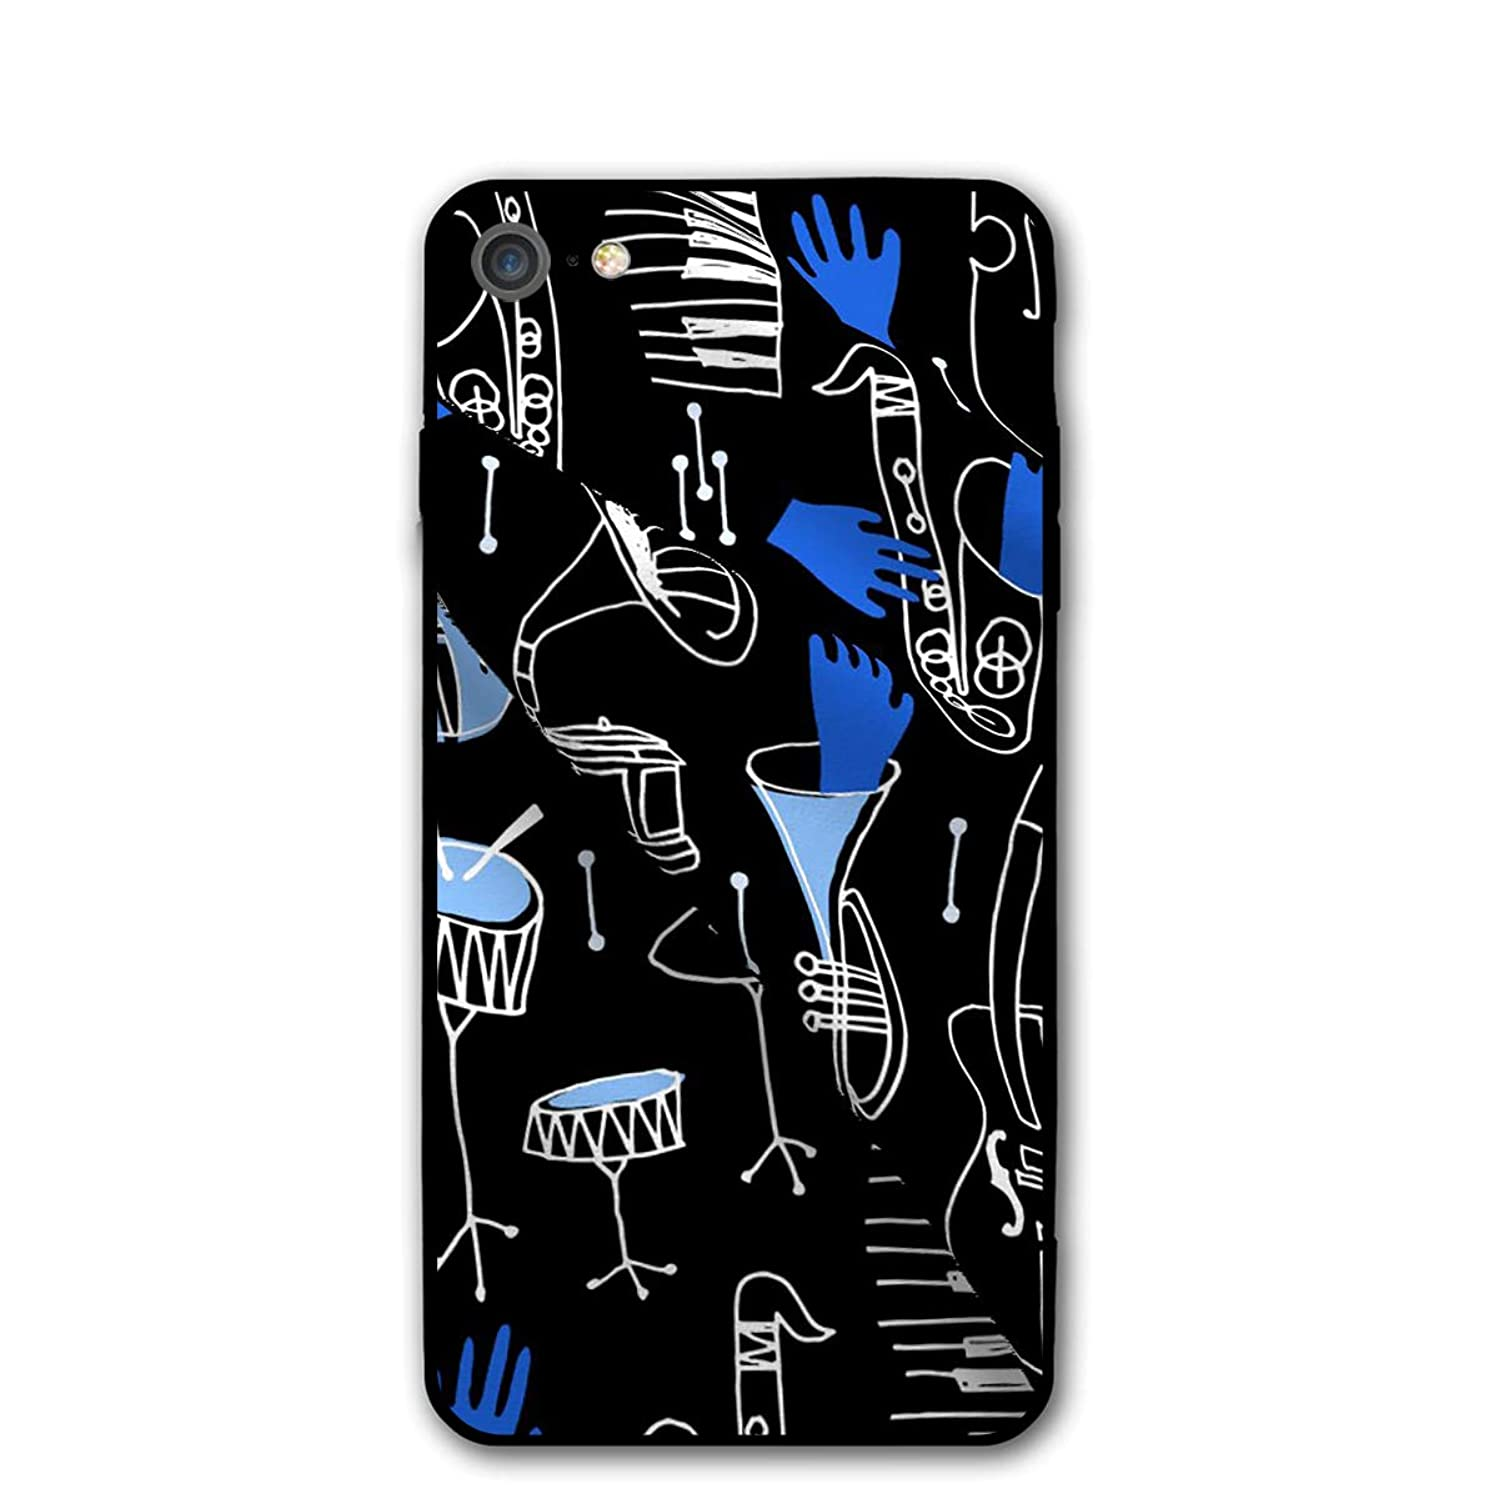 4.7 Inch iPhone 8 Case Musical Print Anti-Scratch Shock Proof Hard PC Protective Case Cover